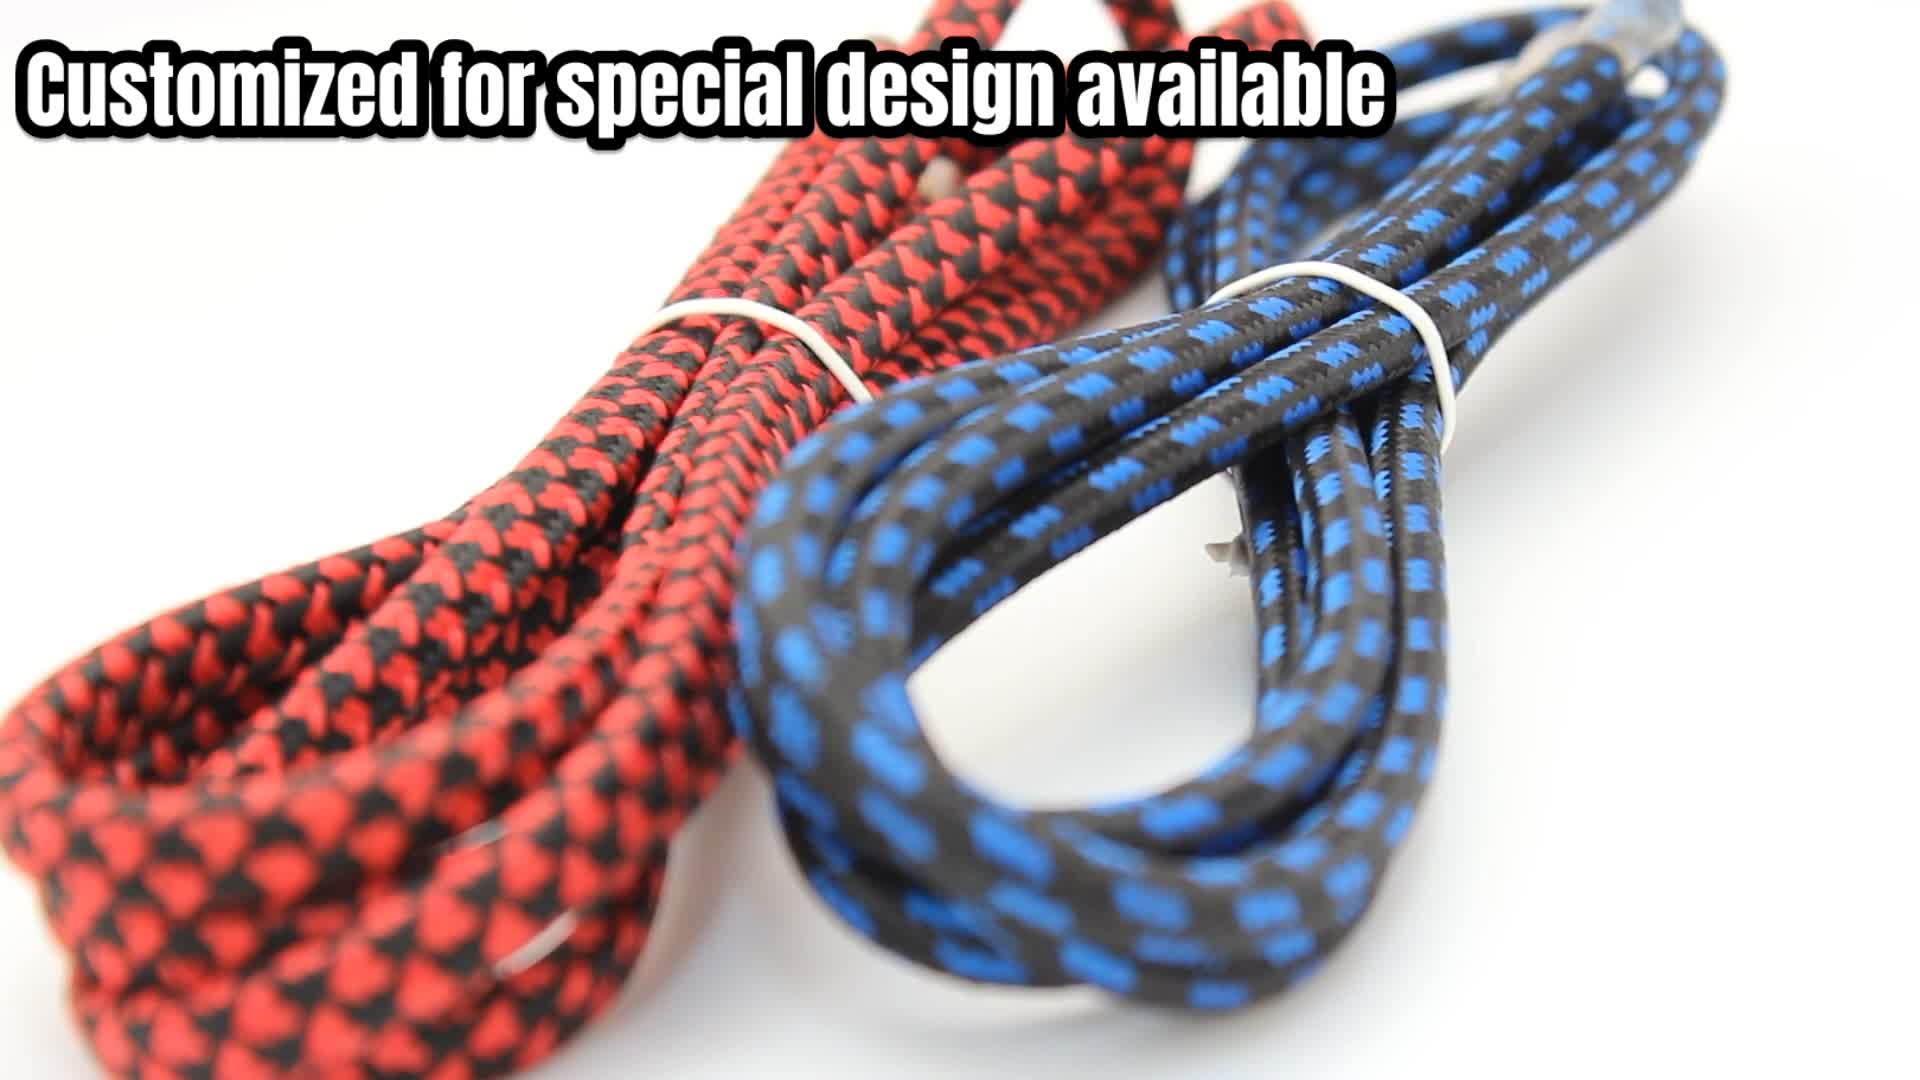 HANSTAR Retro Cloth Covered Lighting Cable Wire Fabric Textile Cable 2 Core Brained Twisted Knitting Electric Wire Cable